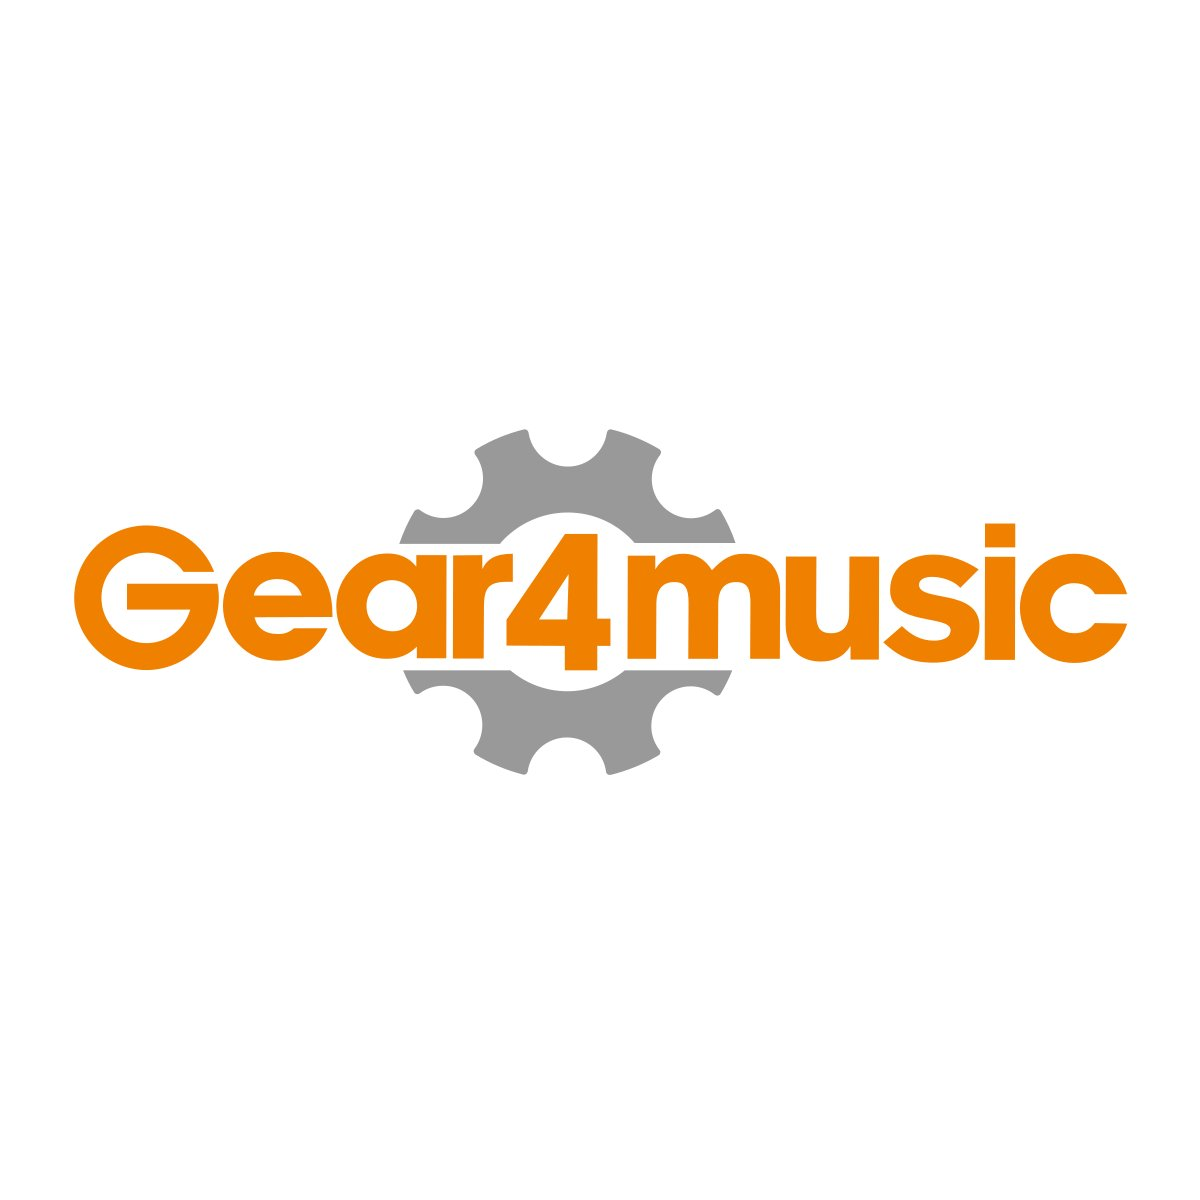 Piano Digital DP-50 de Gear4music + Pack de Accesorios